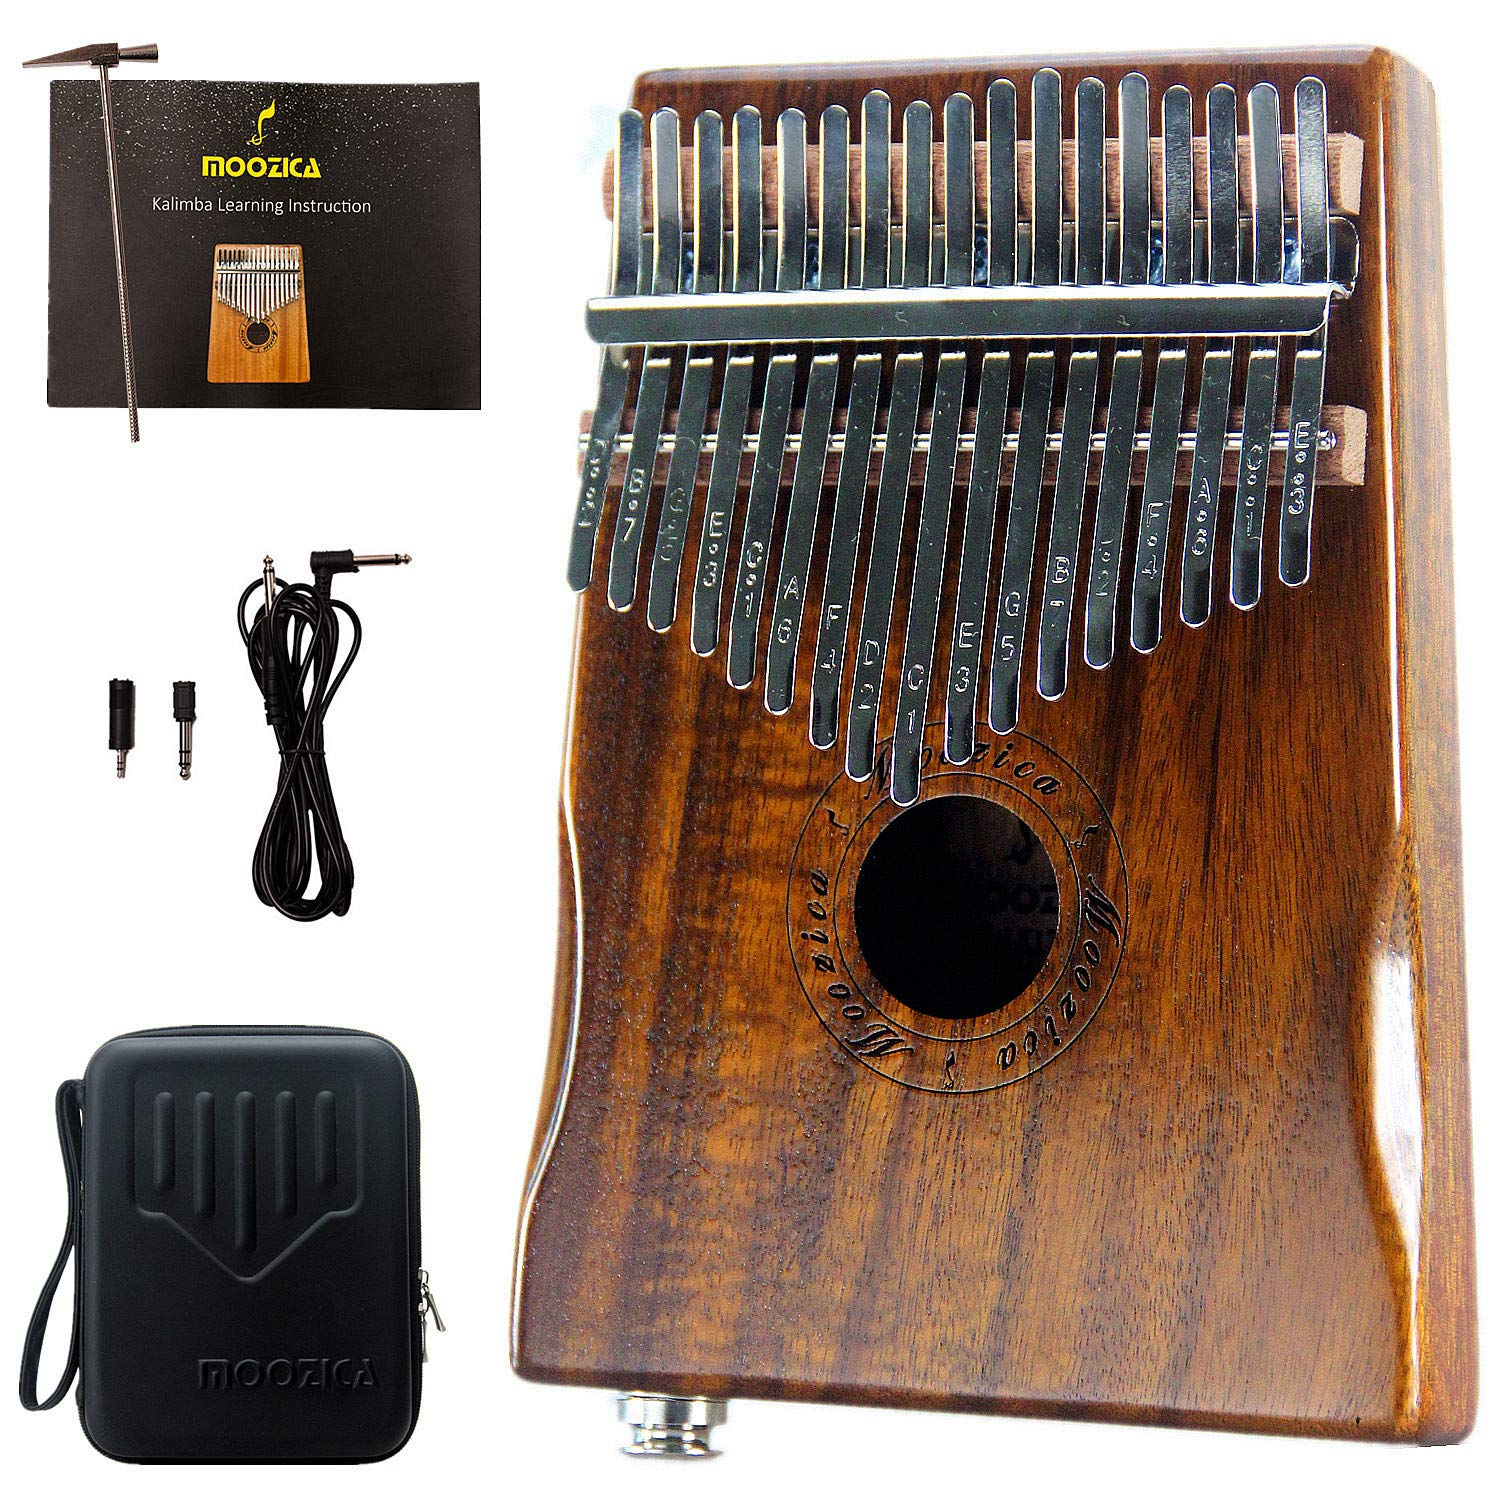 Moozica 17-Key EQ Kalimba, Koa Tone Wood Electric Finger Thumb Piano Built-in Pickup With 6.35mm Audio Interface and Professional Kalimba Bag by Moozica